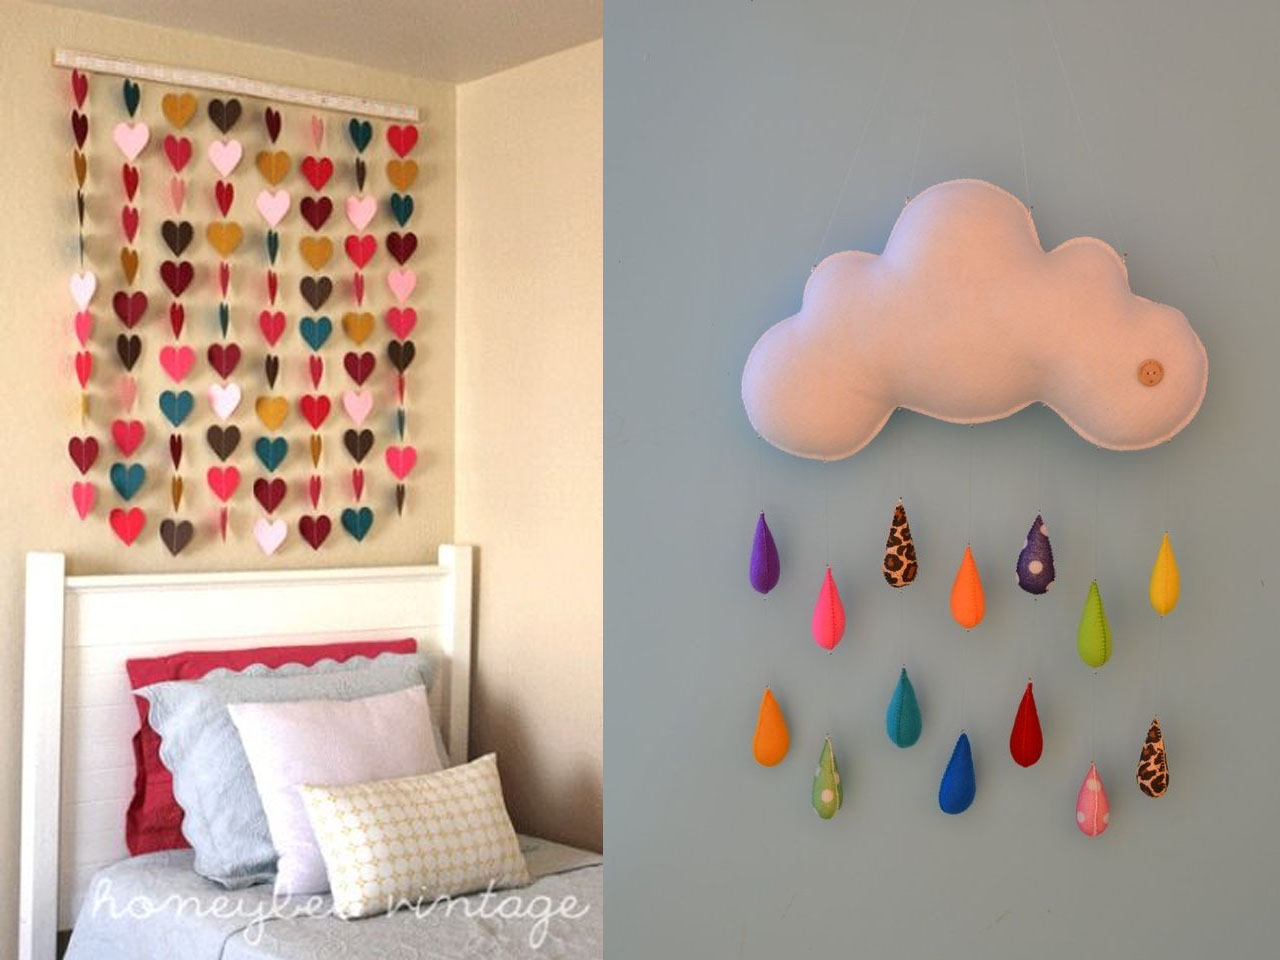 10 ideas de decoraci n de paredes con fieltro - Como decorar pared con fotos ...